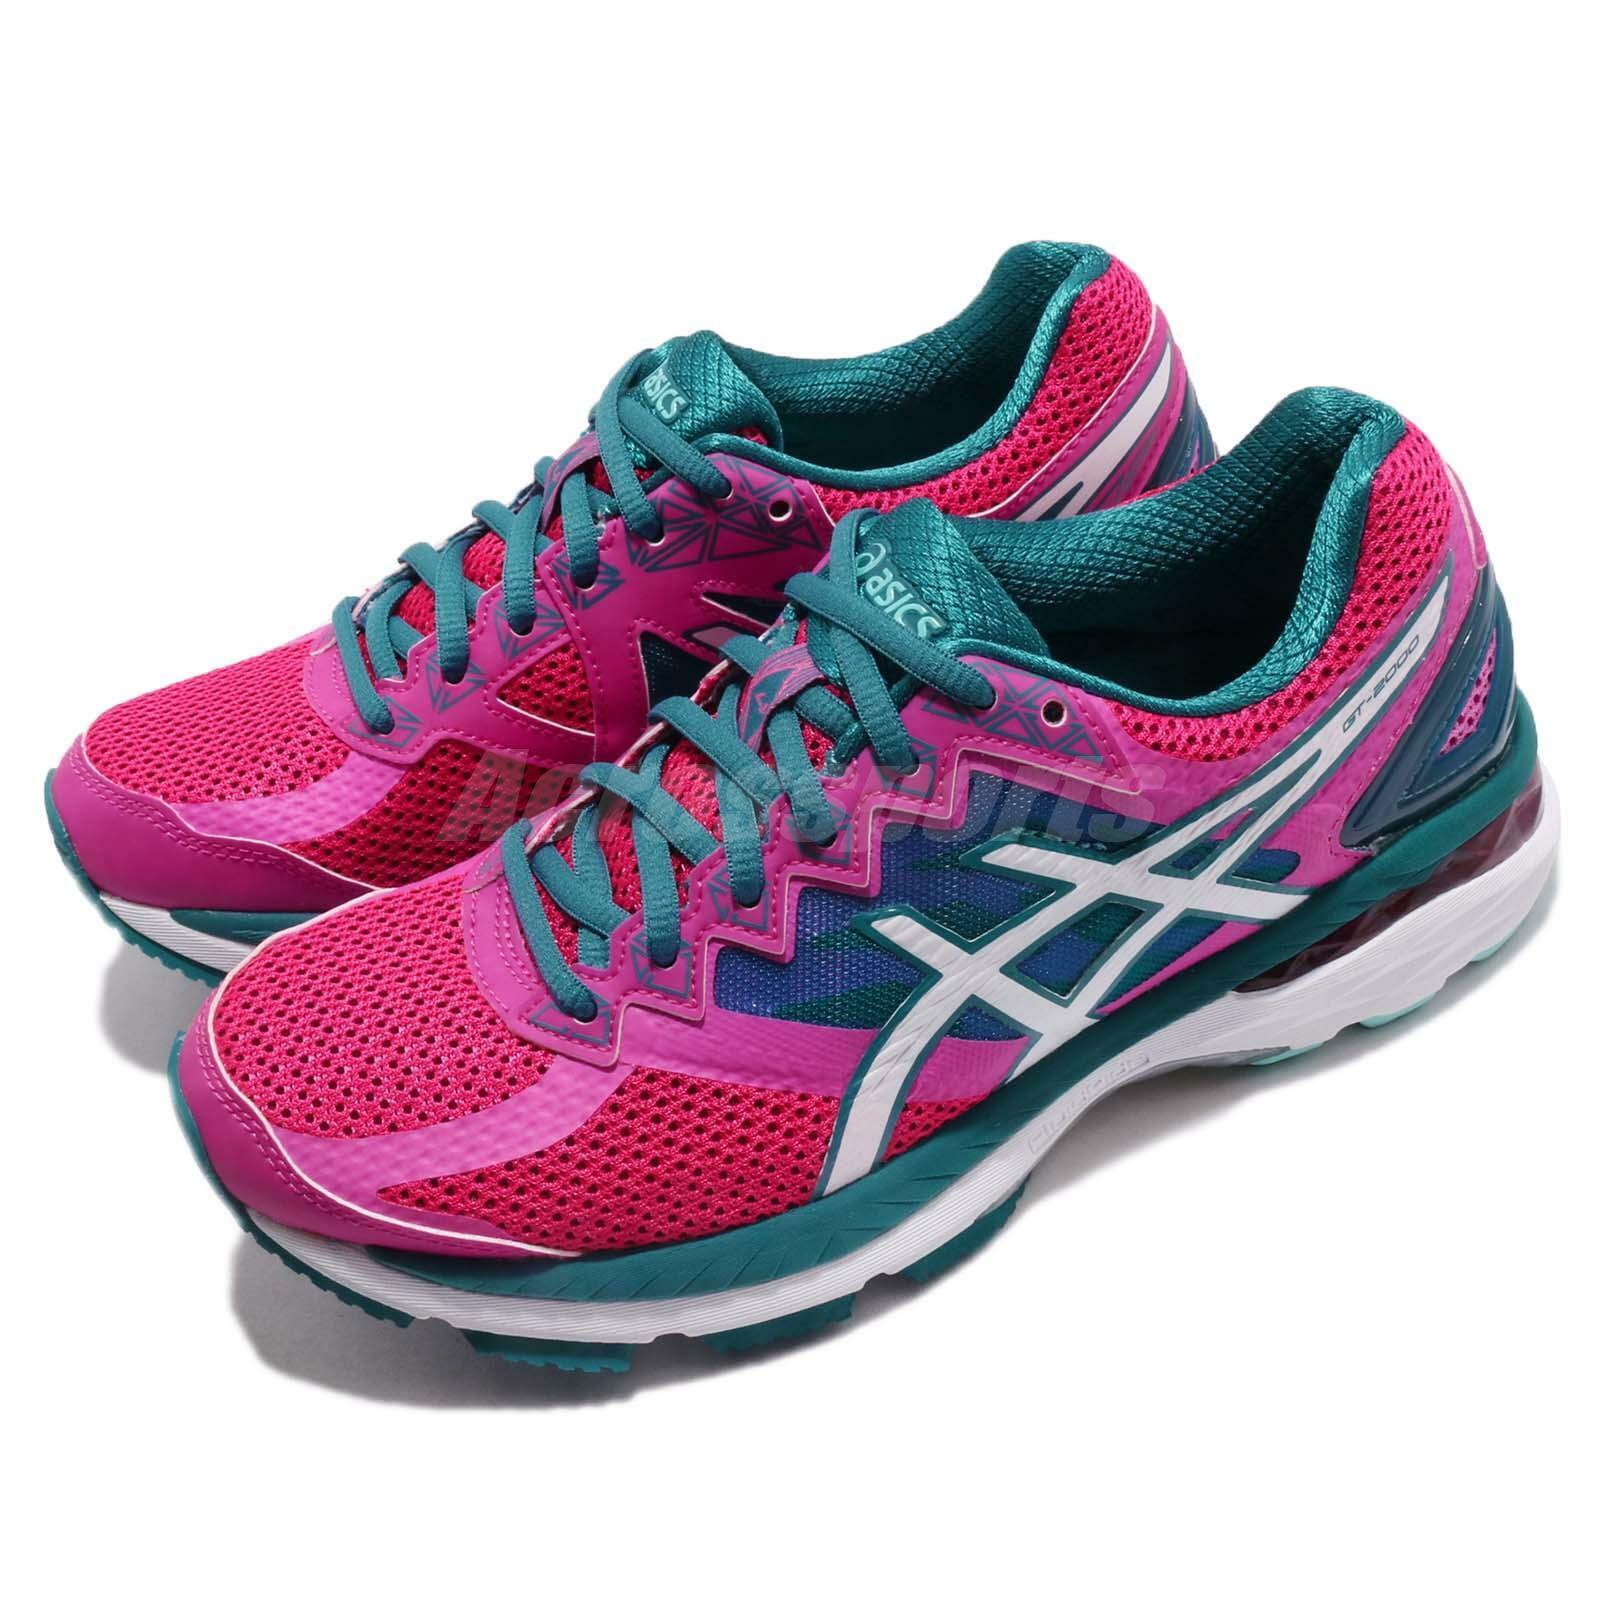 Asics GT-2000 4 V Pink bluee  Womens Running Training shoes Sneakers T656Q-2501  big discount prices